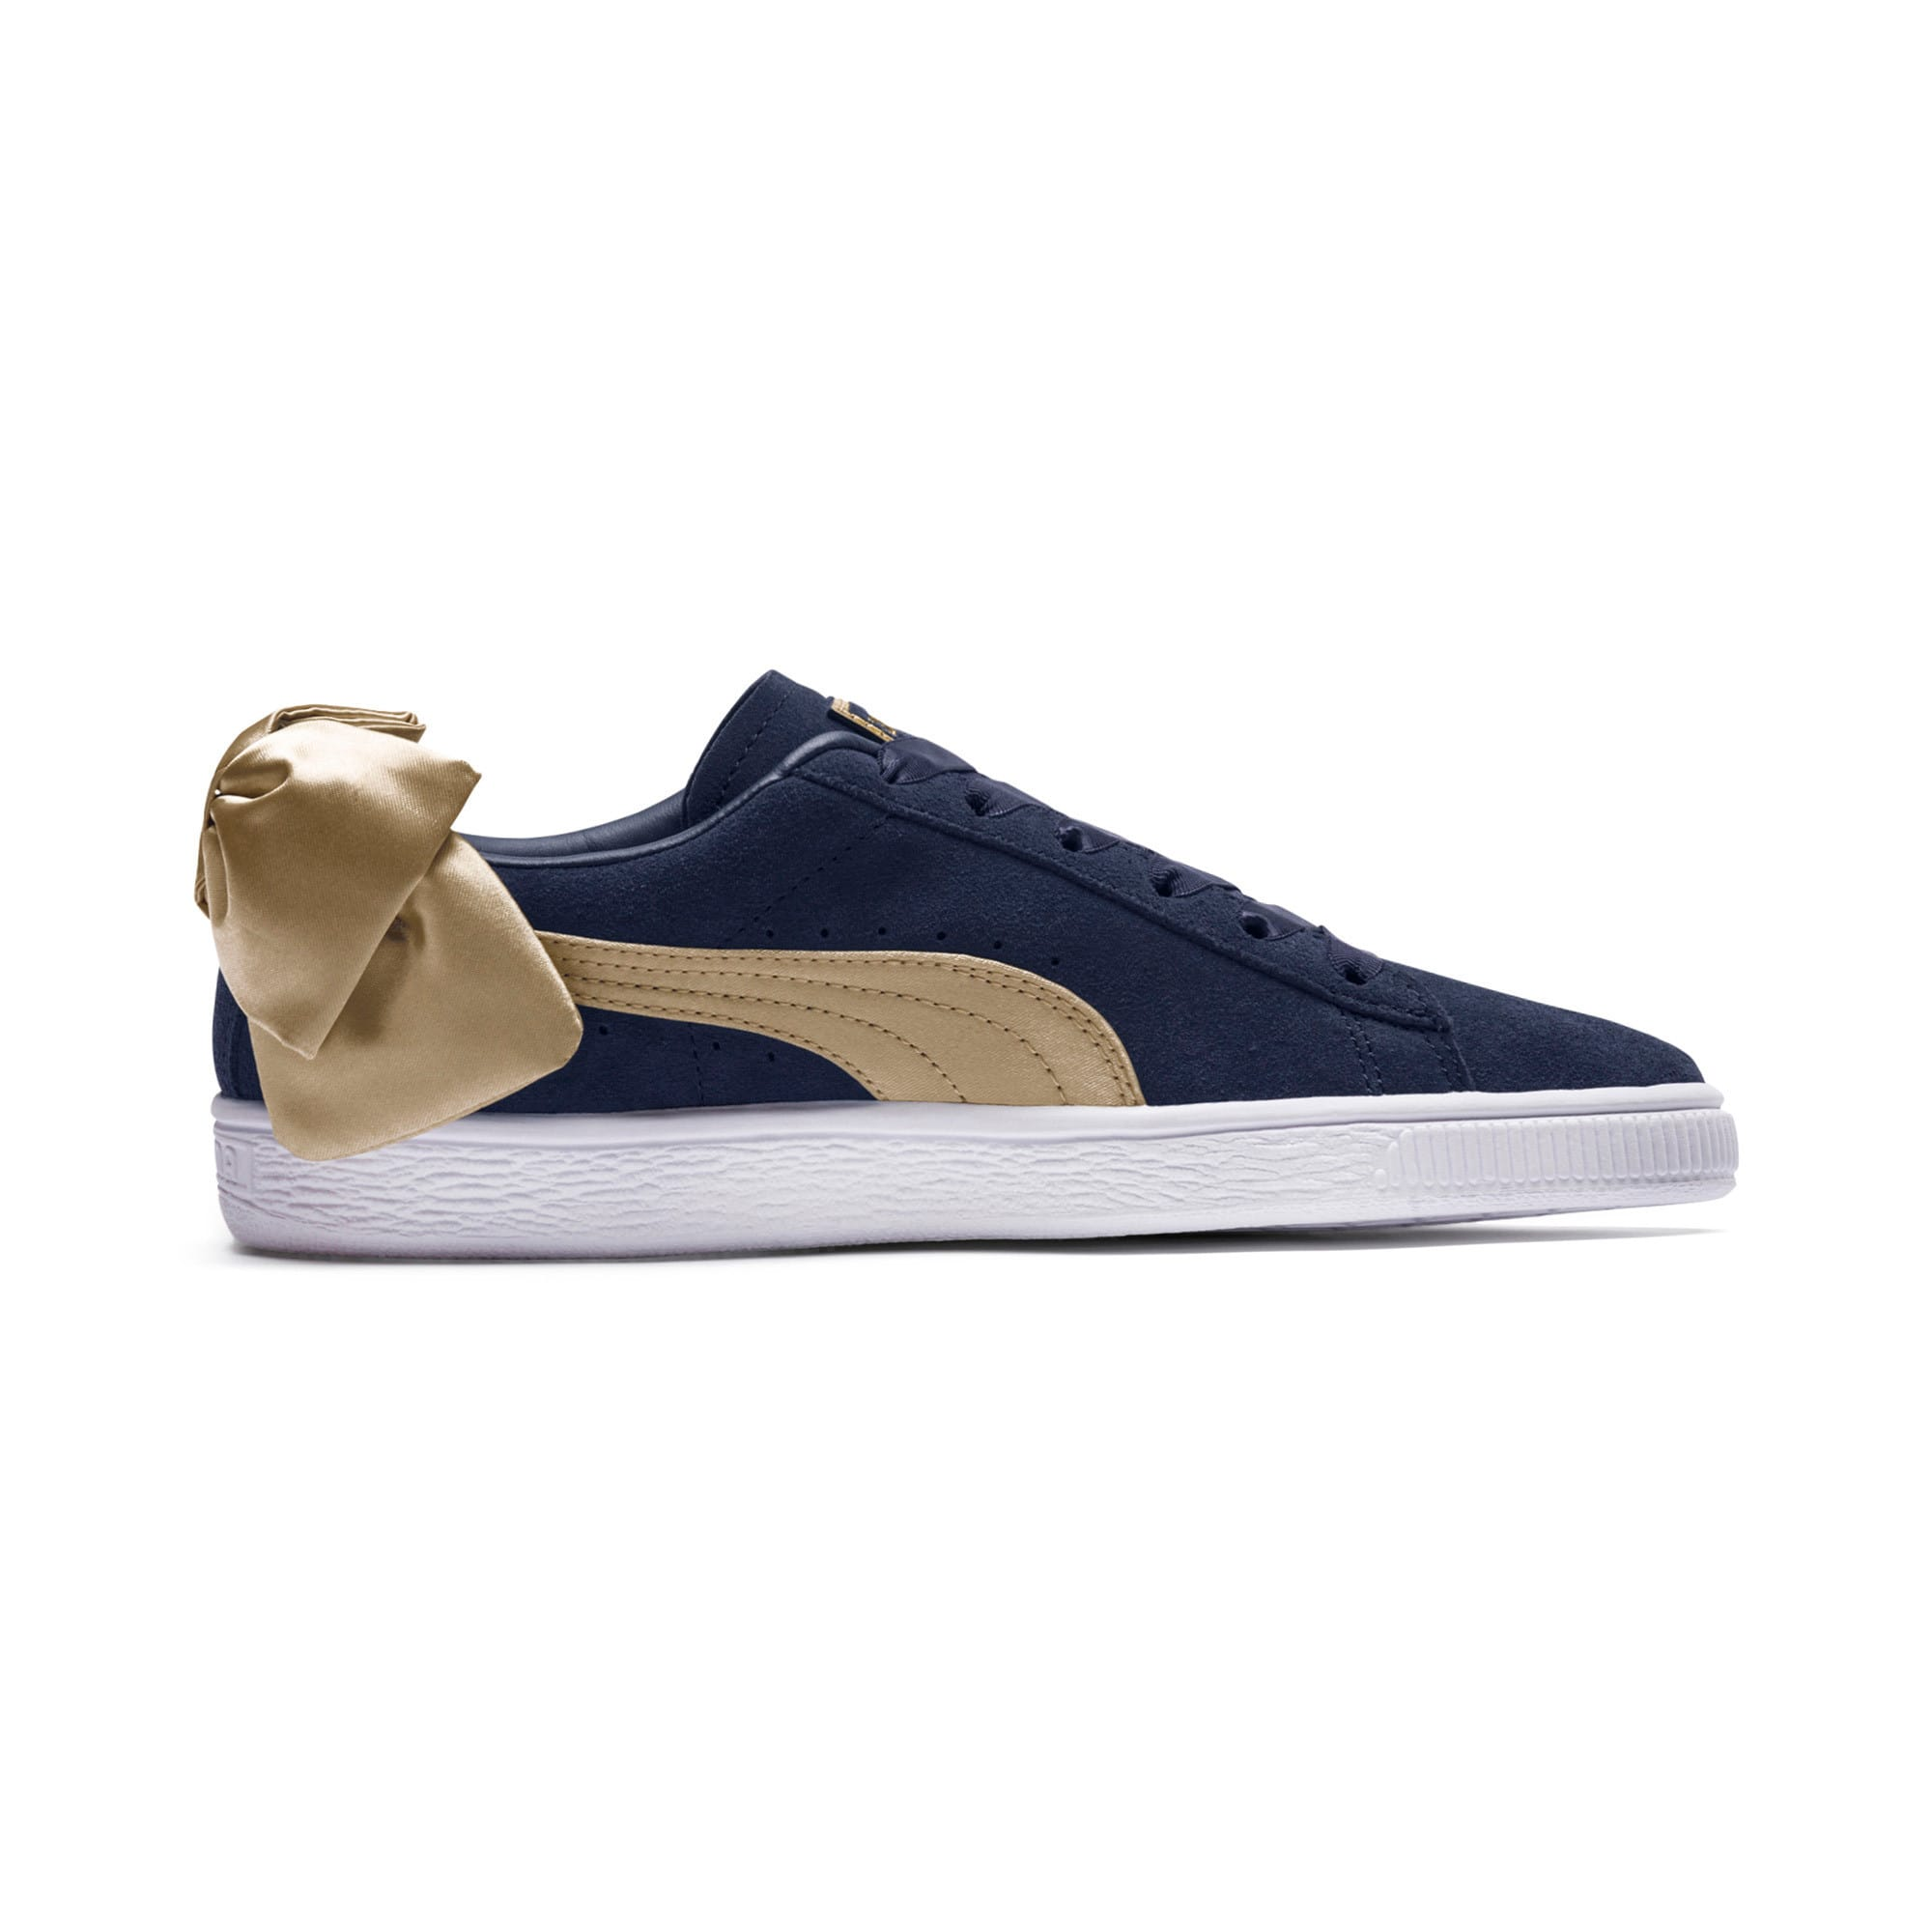 Thumbnail 5 of Suede Bow Varsity Women's Trainers, Peacoat-Metallic Gold, medium-IND